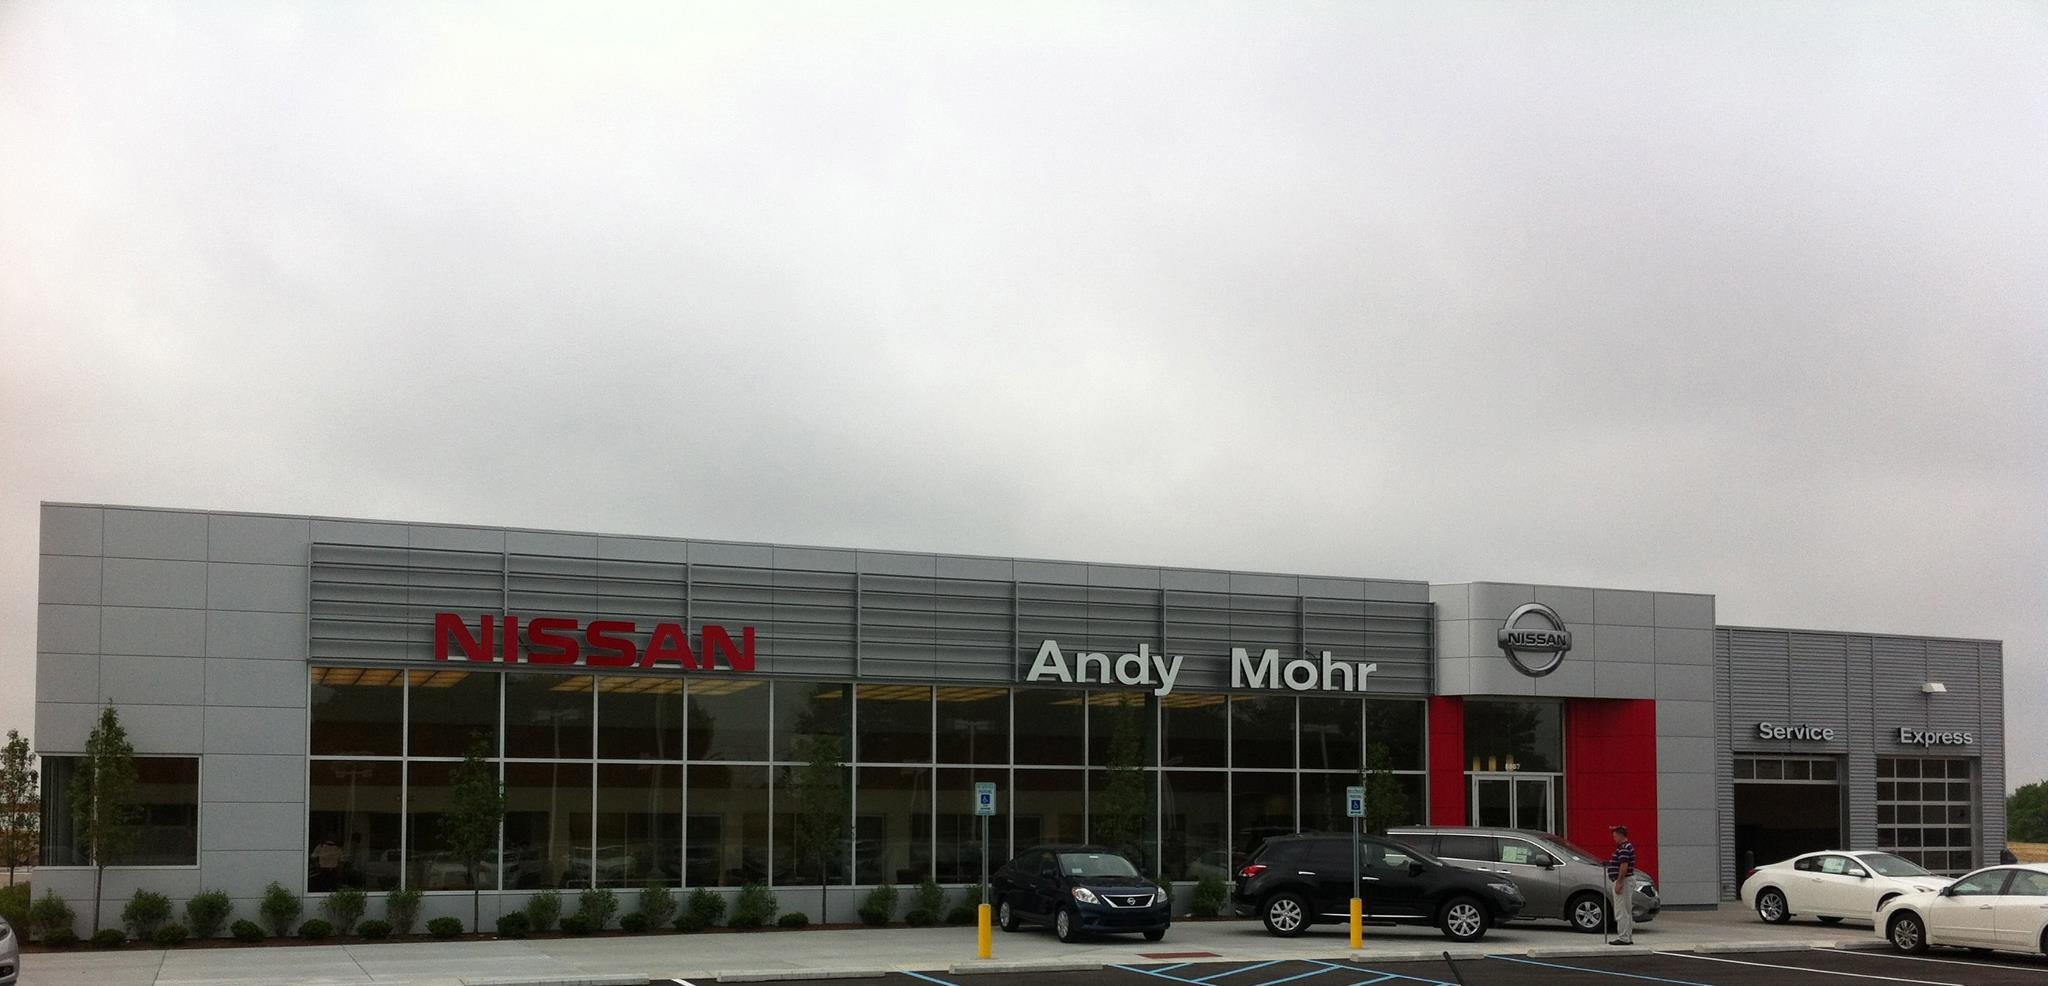 andy mohr avon nissan coupons avon in near me 8coupons. Black Bedroom Furniture Sets. Home Design Ideas